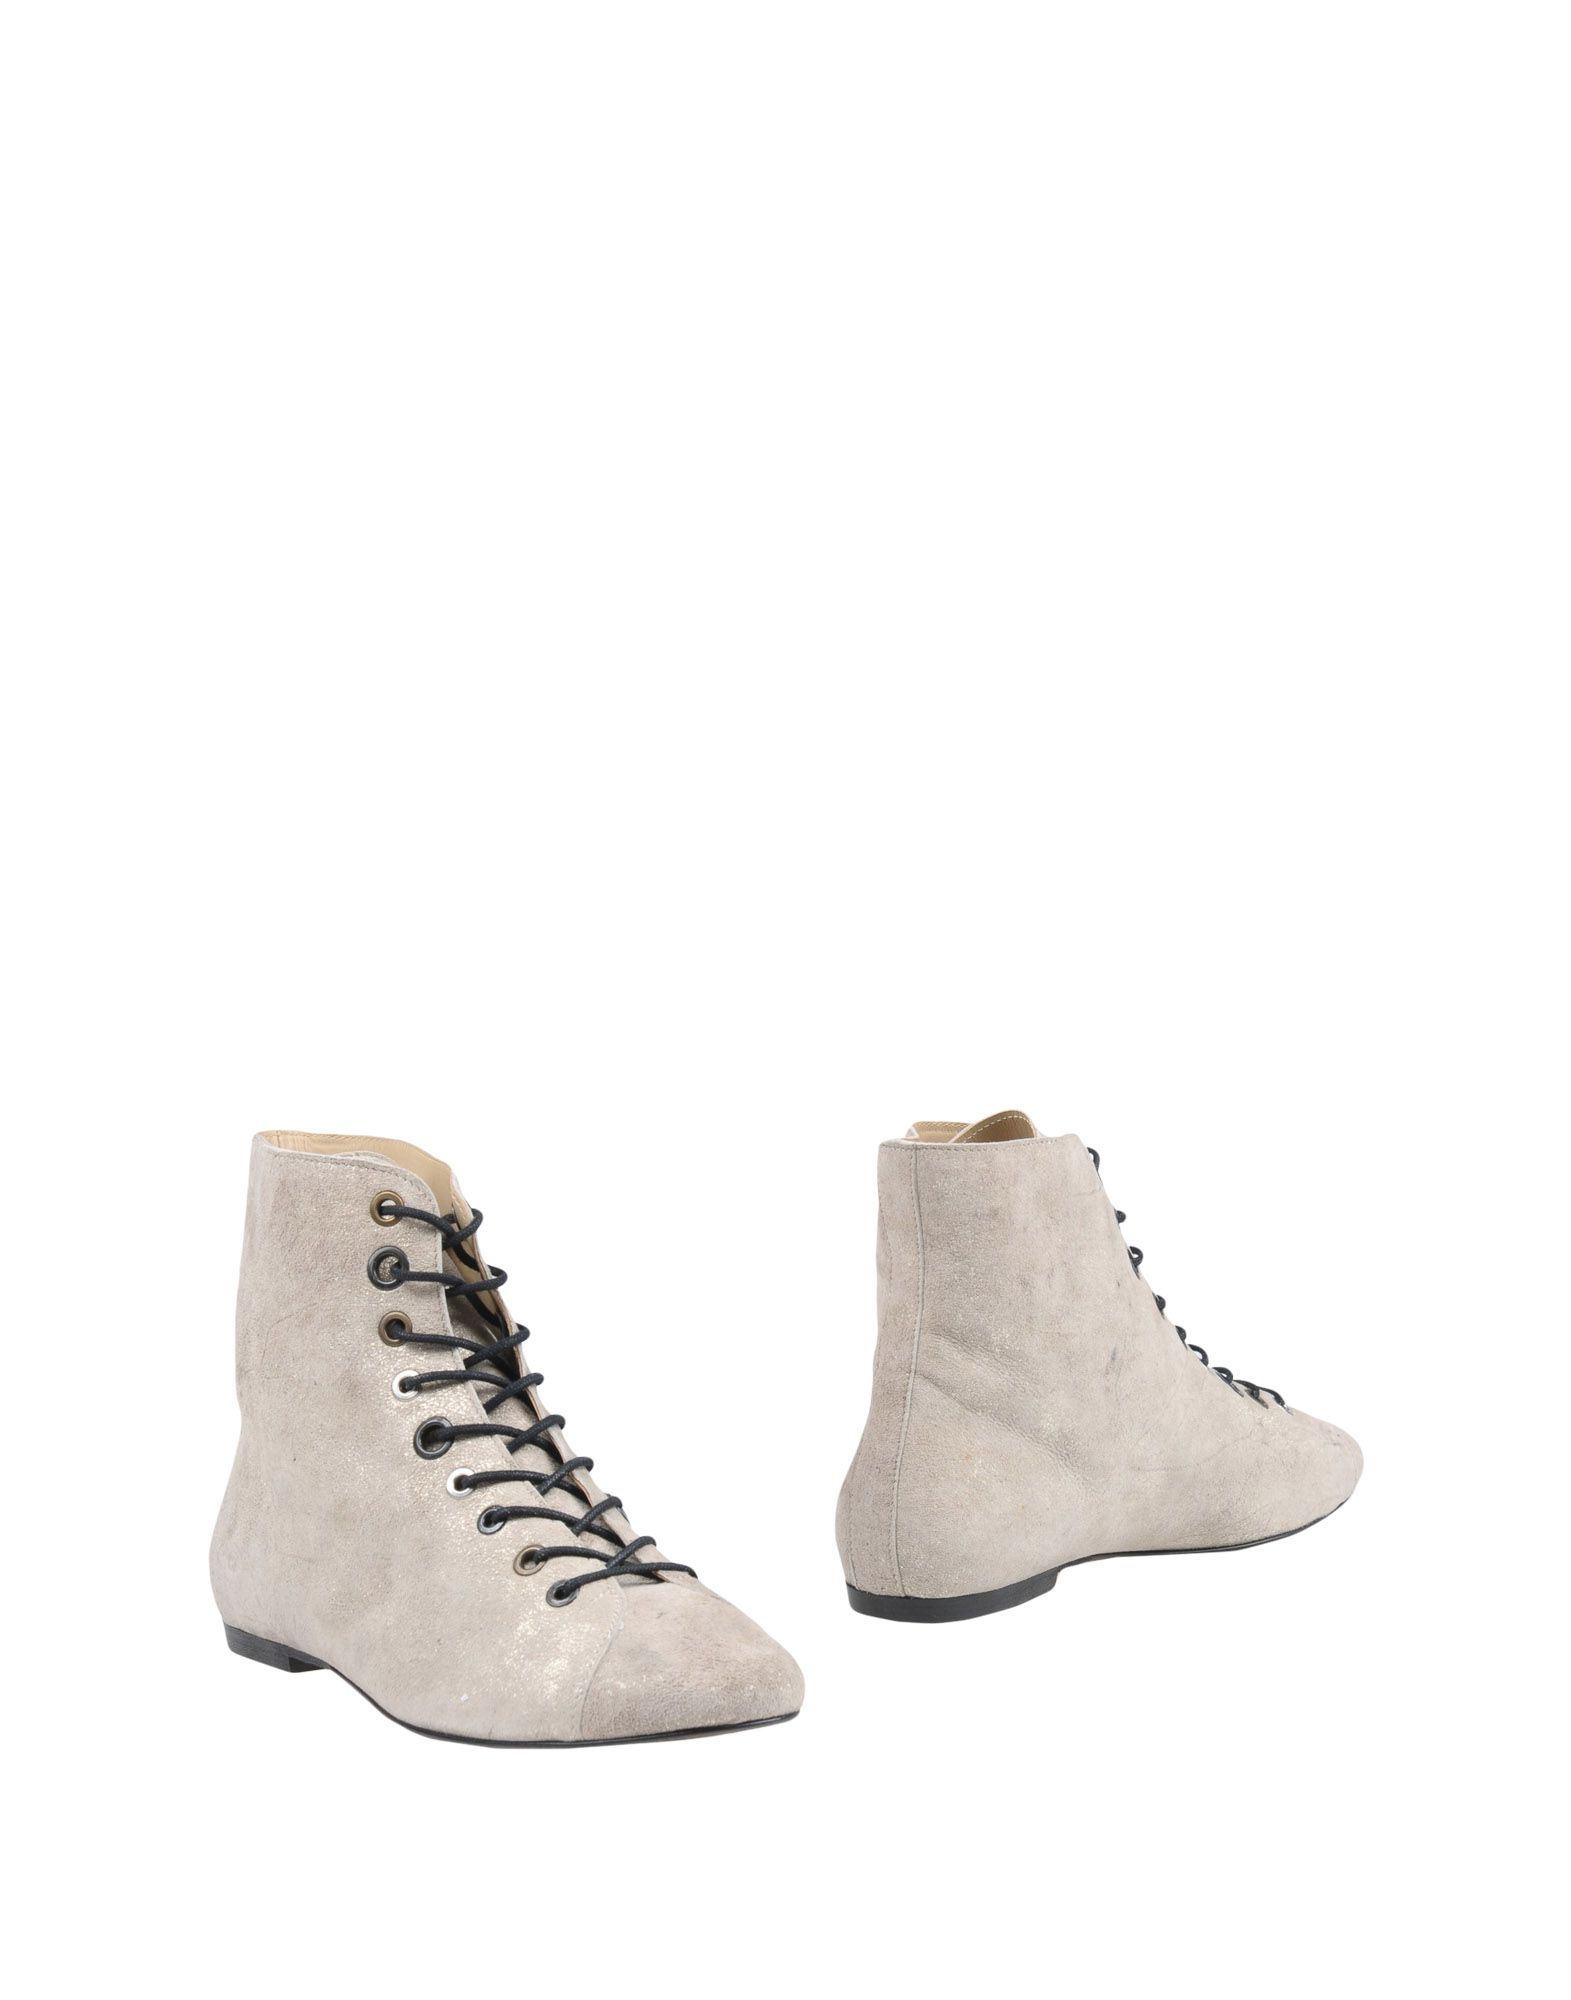 NUNC Ankle Boot in Light Grey